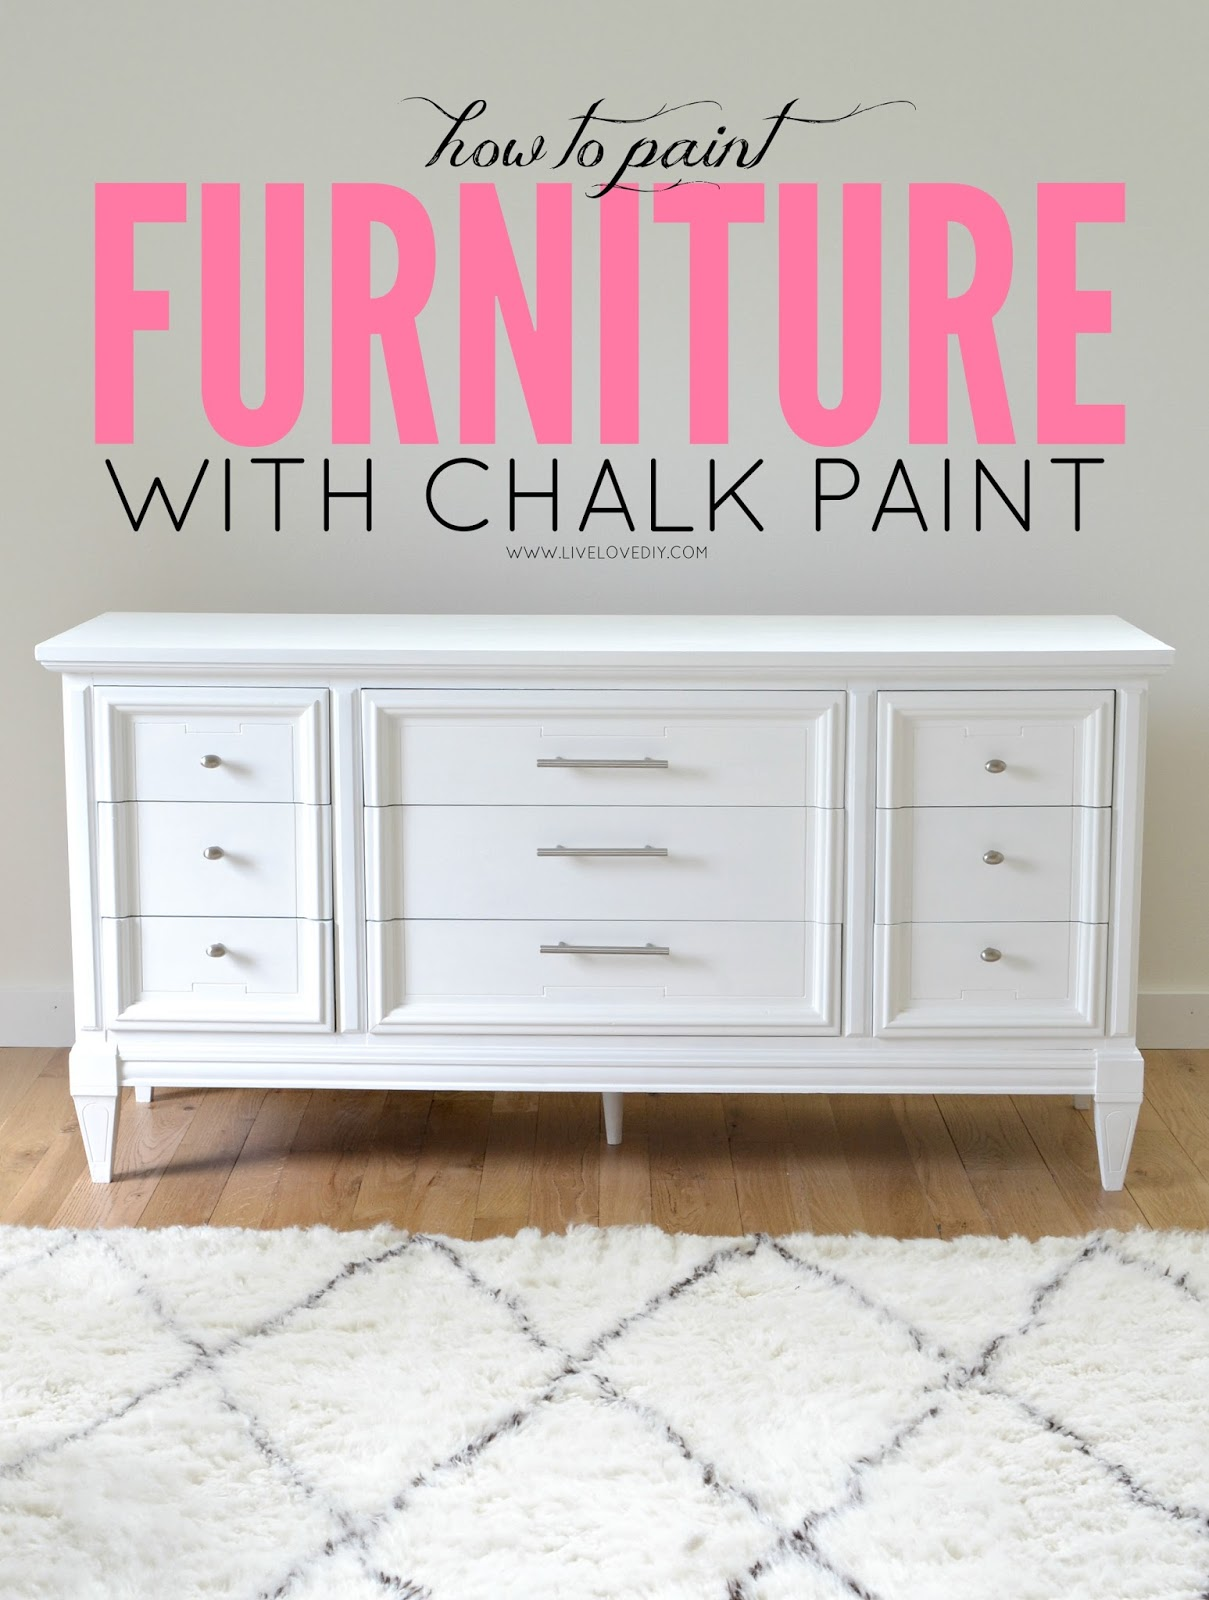 White Painted Furniture livelovediy: how to paint furniture with chalk paint (and how to